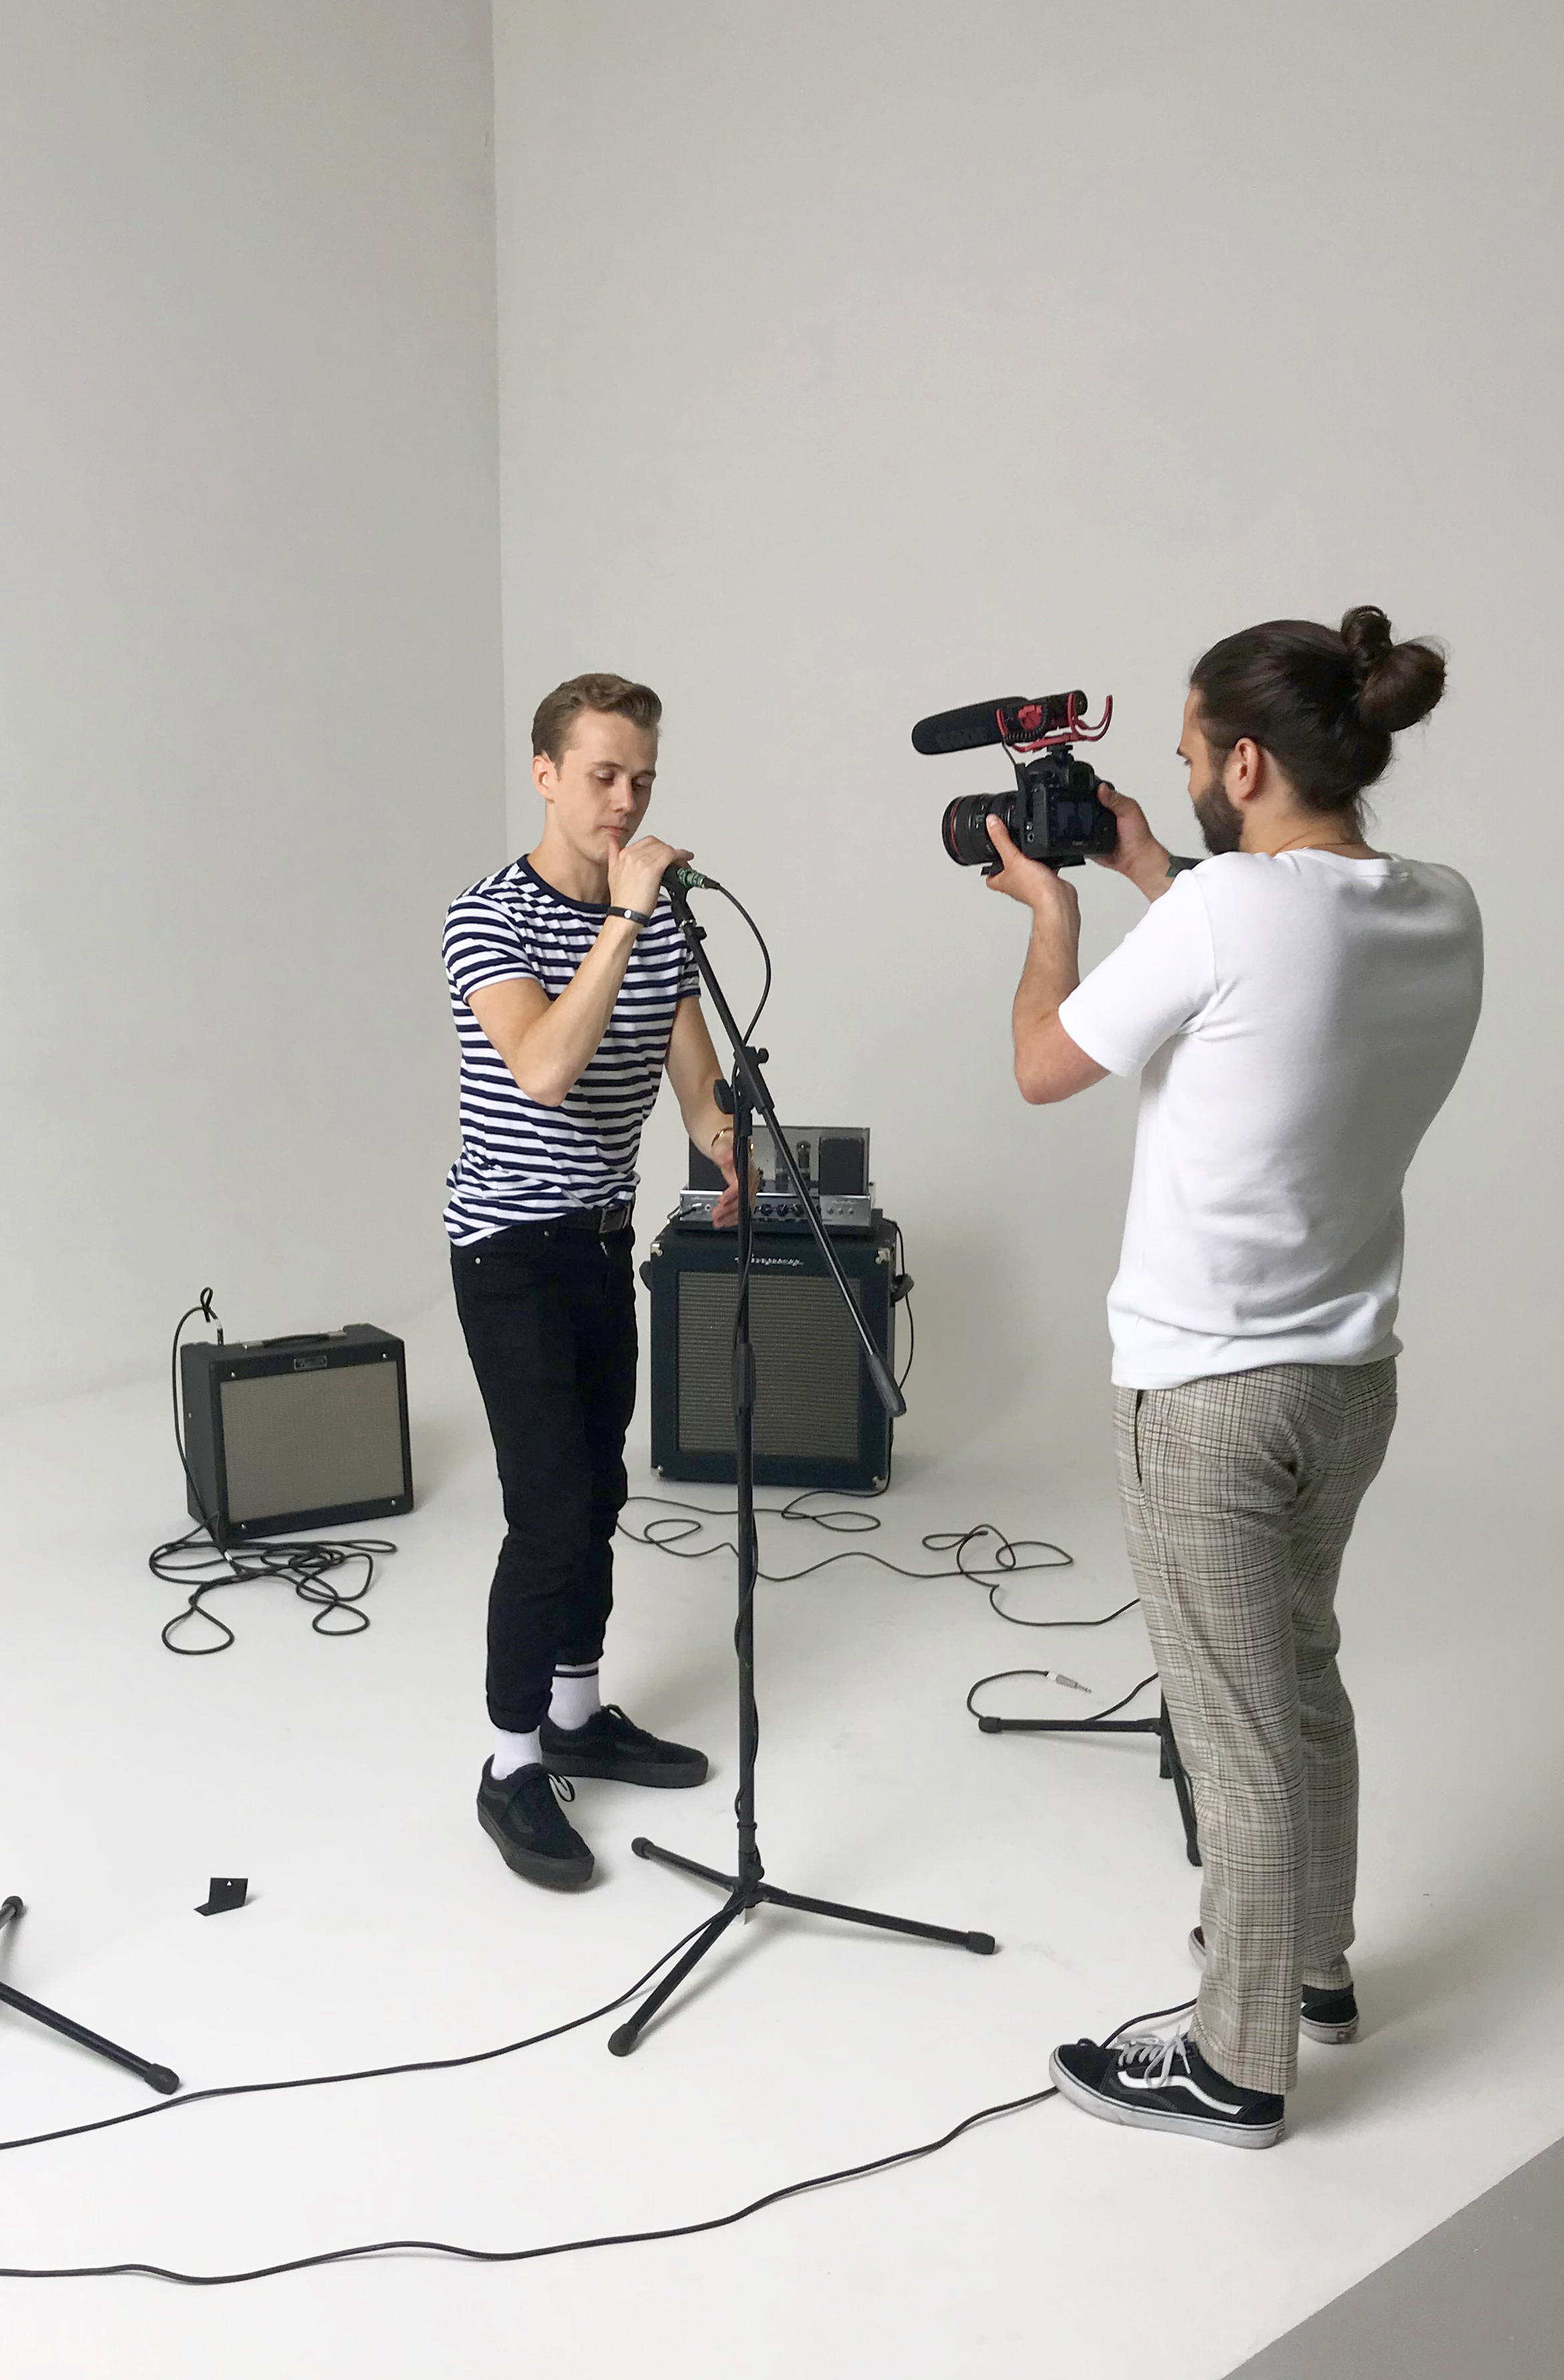 Nathan with the band's videographer, taking charge of the behind the scenes content.